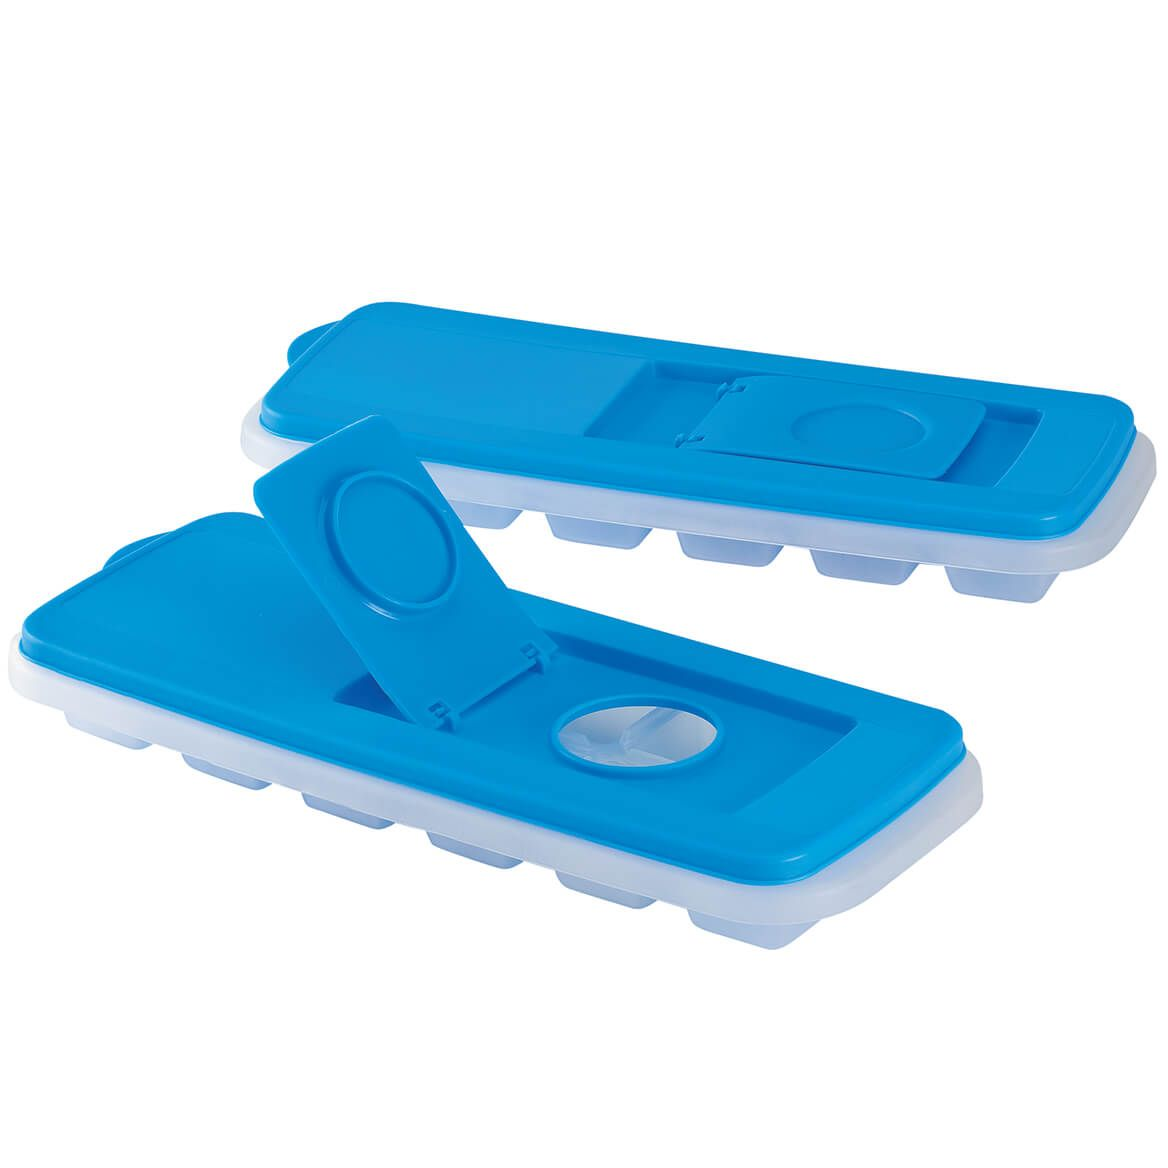 Easy to Fill Covered Ice Cube Trays, Set of 2-372017